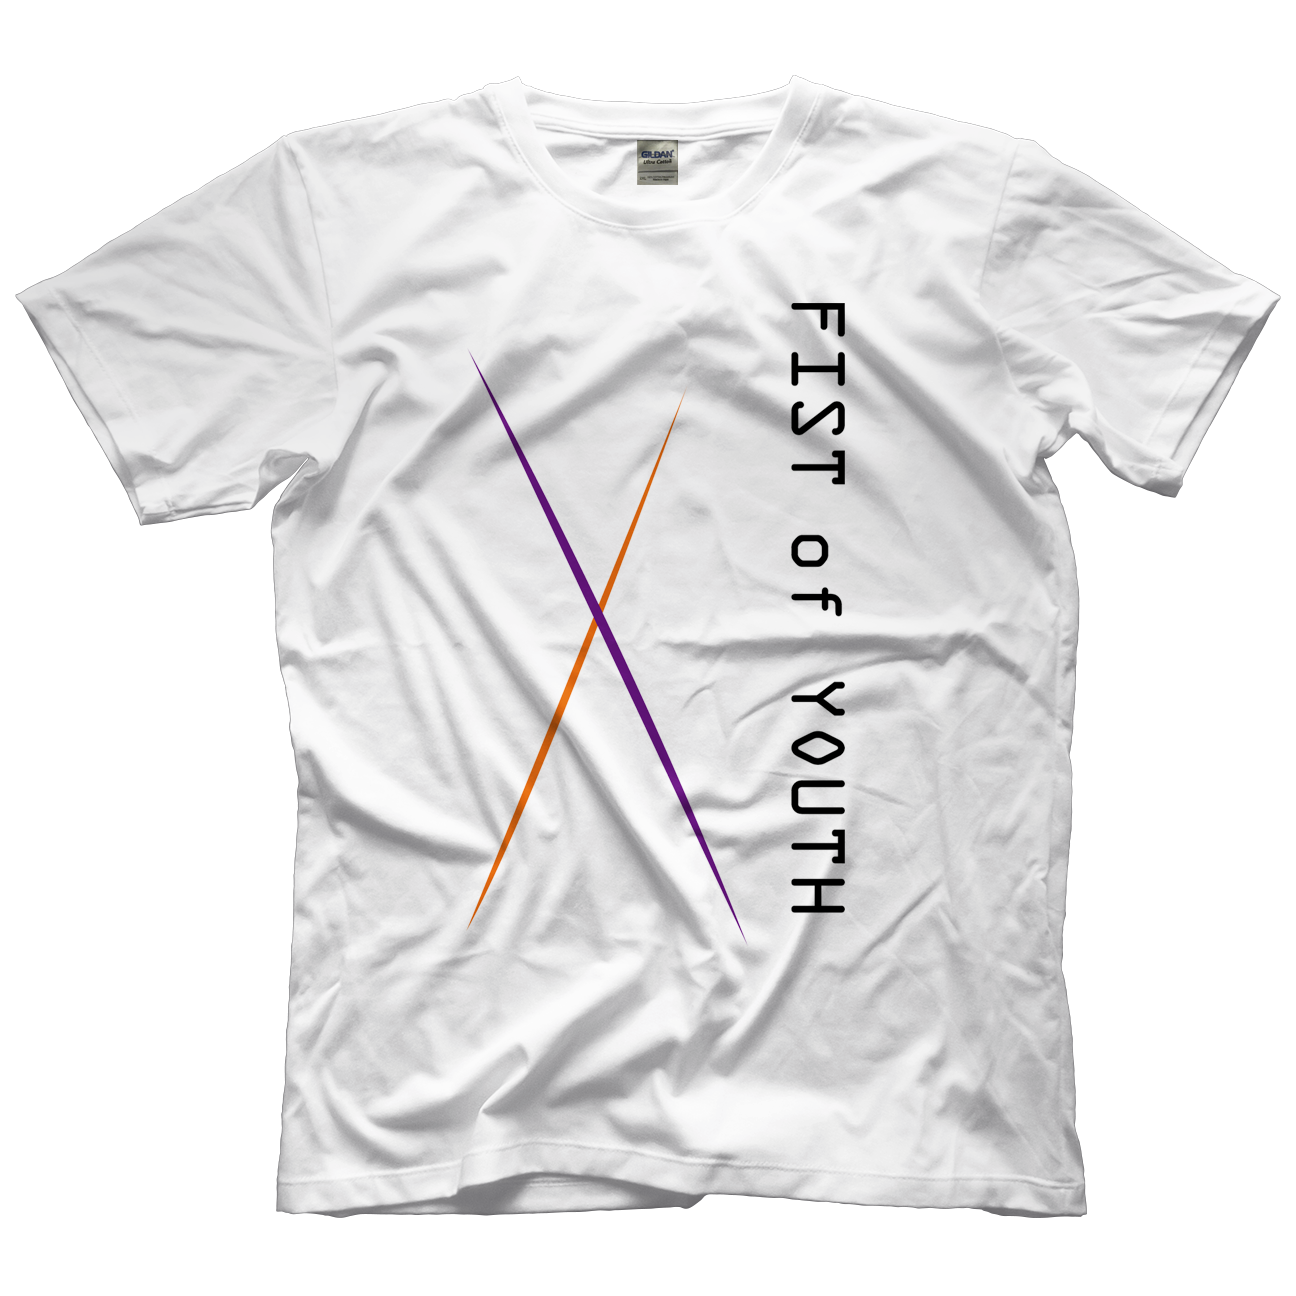 Kenta Kobashi Fist Of Youth T-shirt